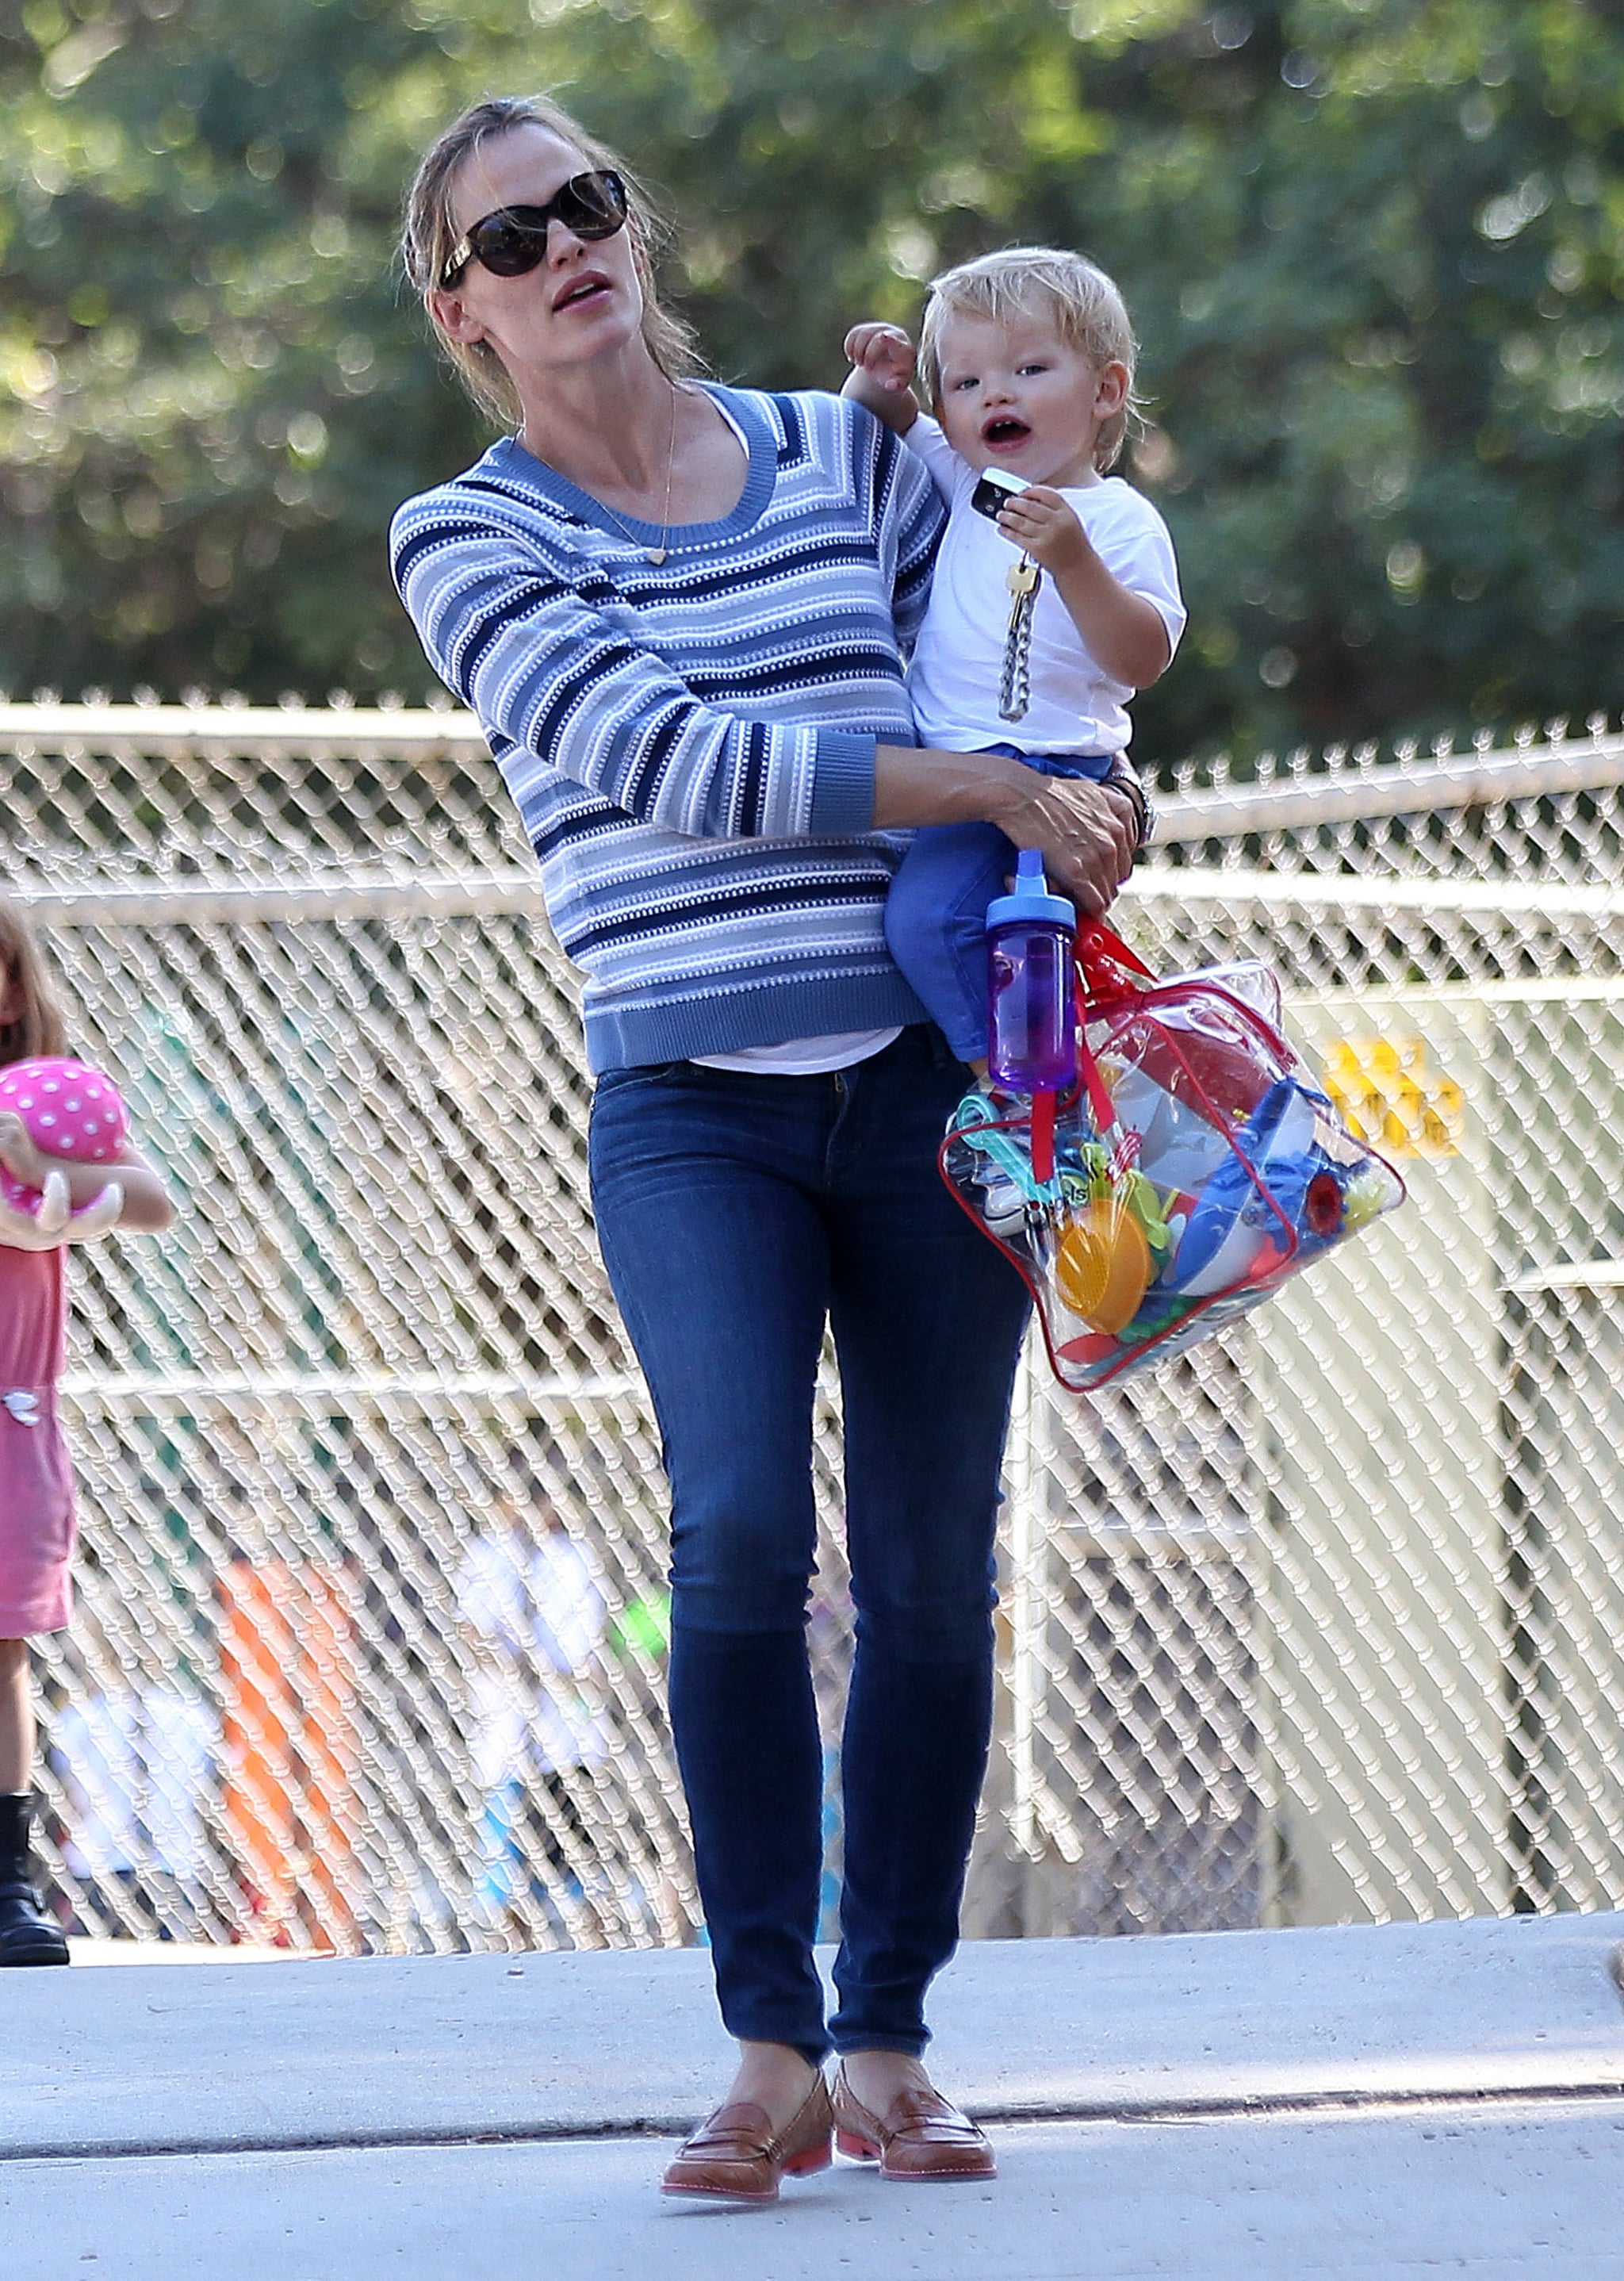 Jennifer Garner packed up her kids' toys after the playground date.